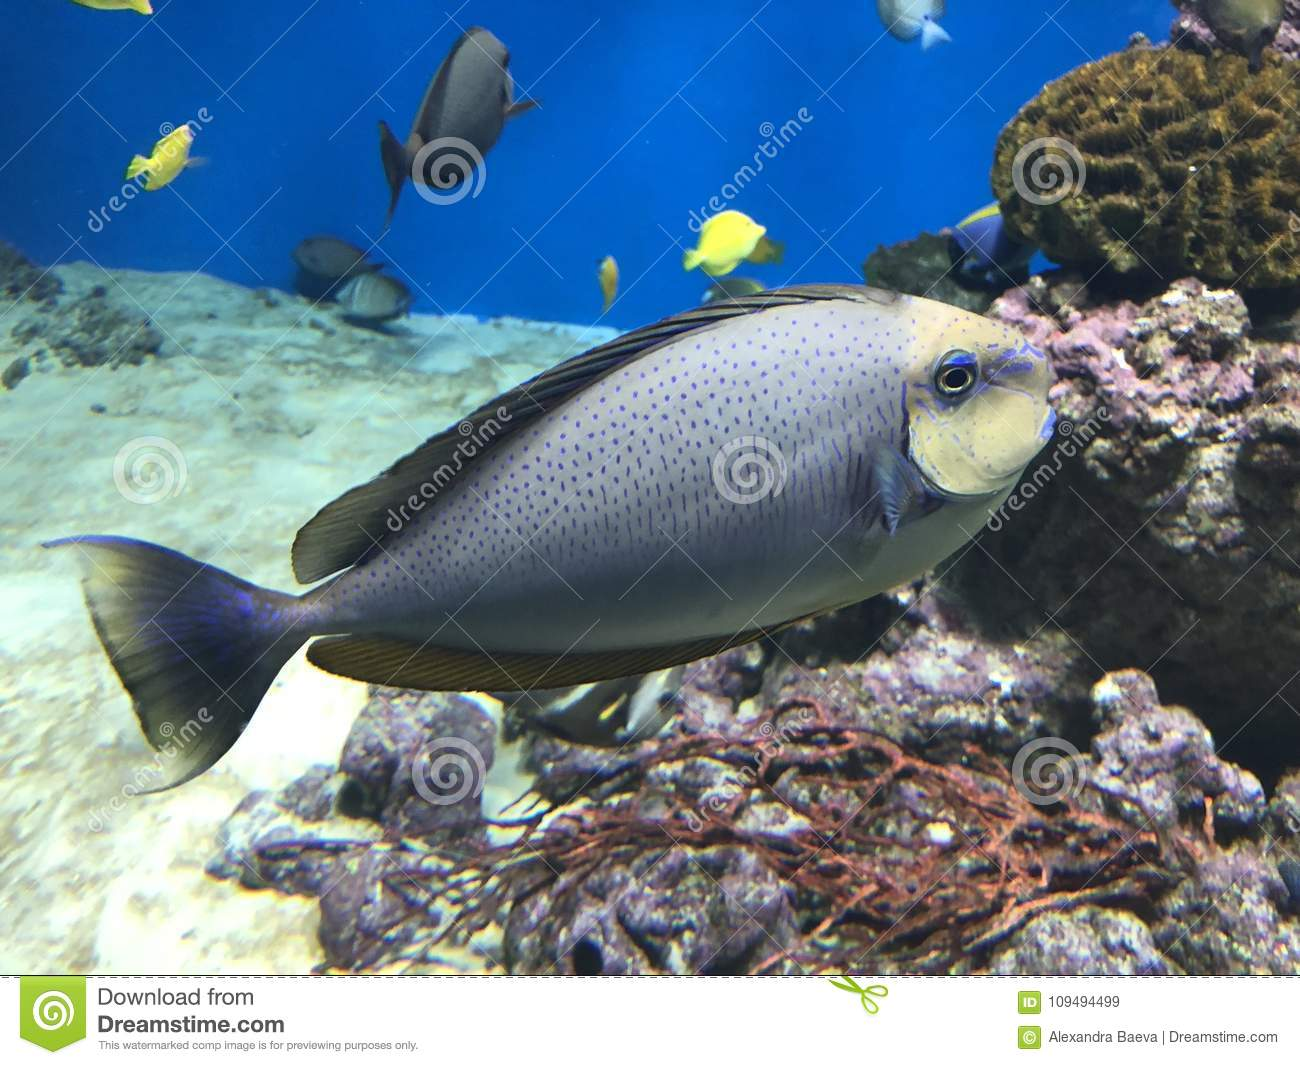 Beautiful fish in the ocean stock image image of fish blue 109494499 download beautiful fish in the ocean stock image image of fish blue 109494499 publicscrutiny Image collections